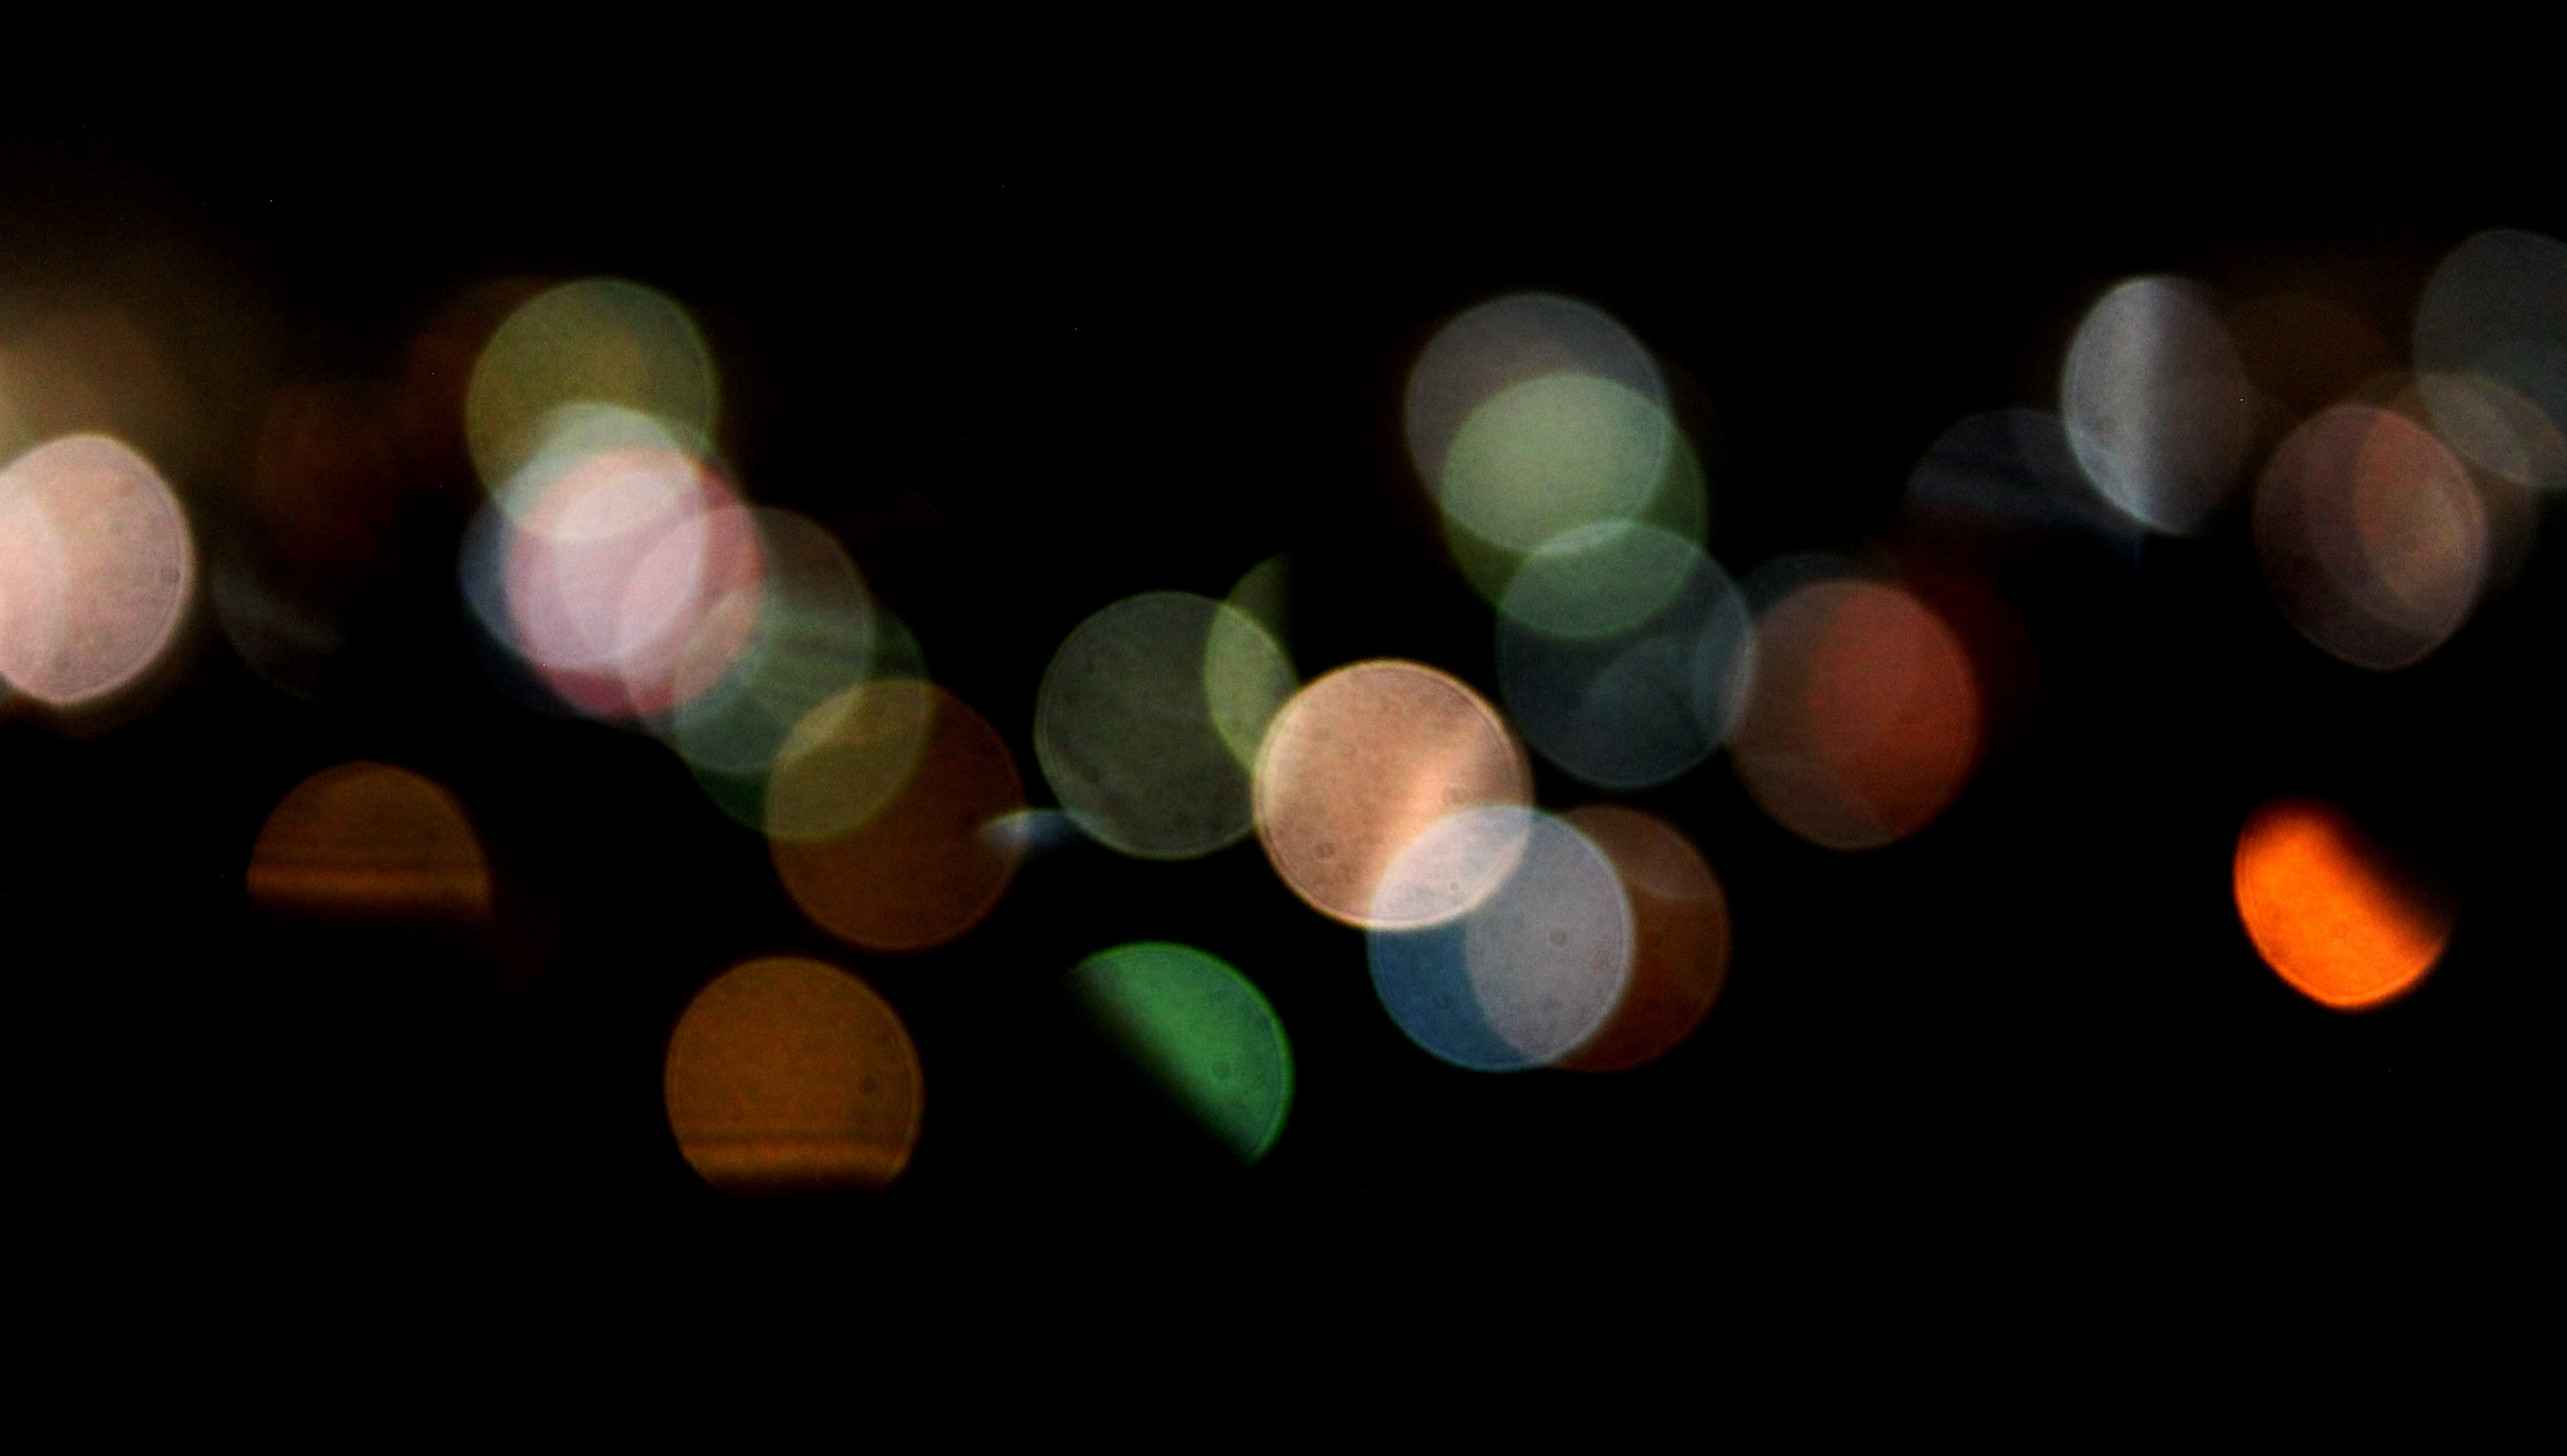 Shallow Focus Photo of a Lights